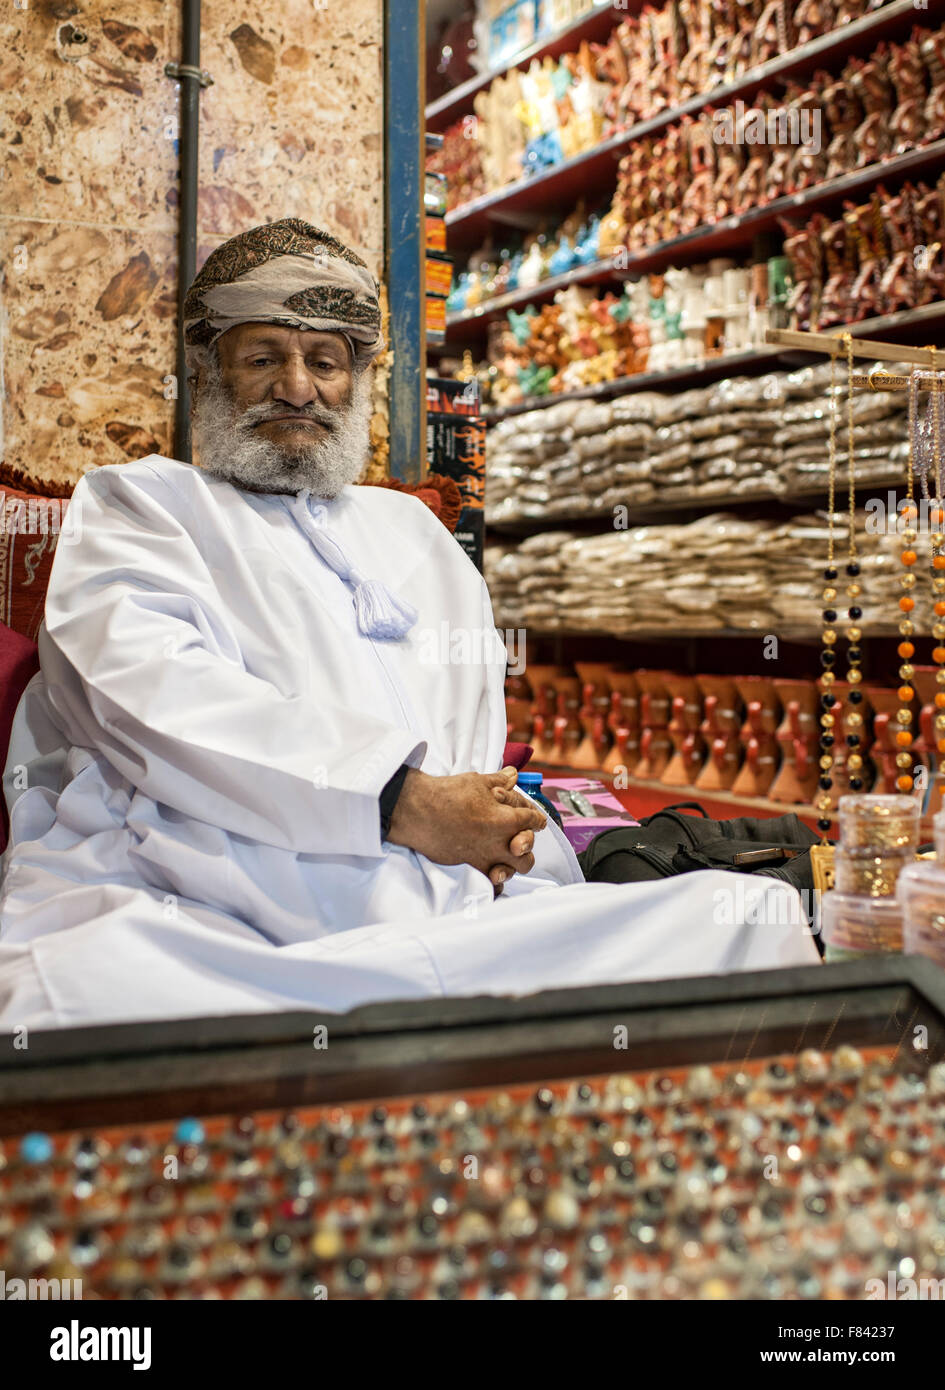 Omani man sitting outside his store in the Mutrah souk in Muscat, the capital of the Sultanate of Oman. - Stock Image